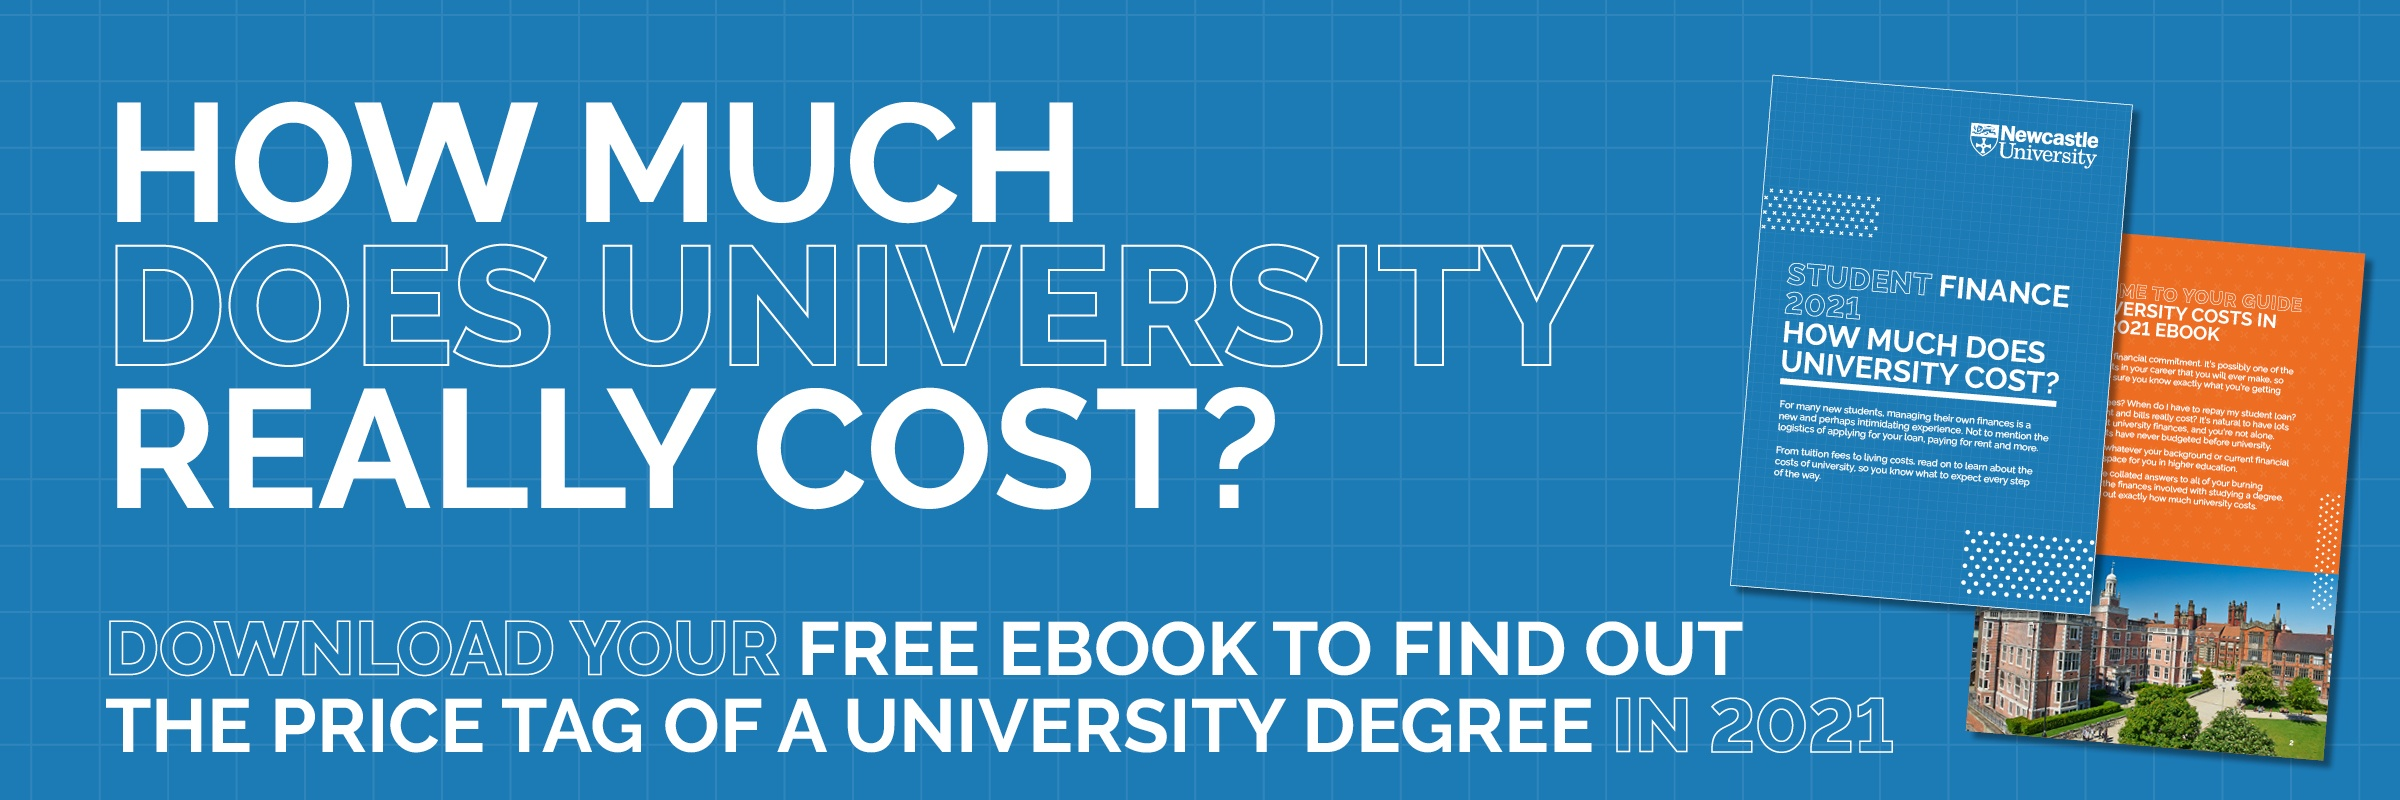 How_Much_Does_University_Cost_Download_Ebook_Here